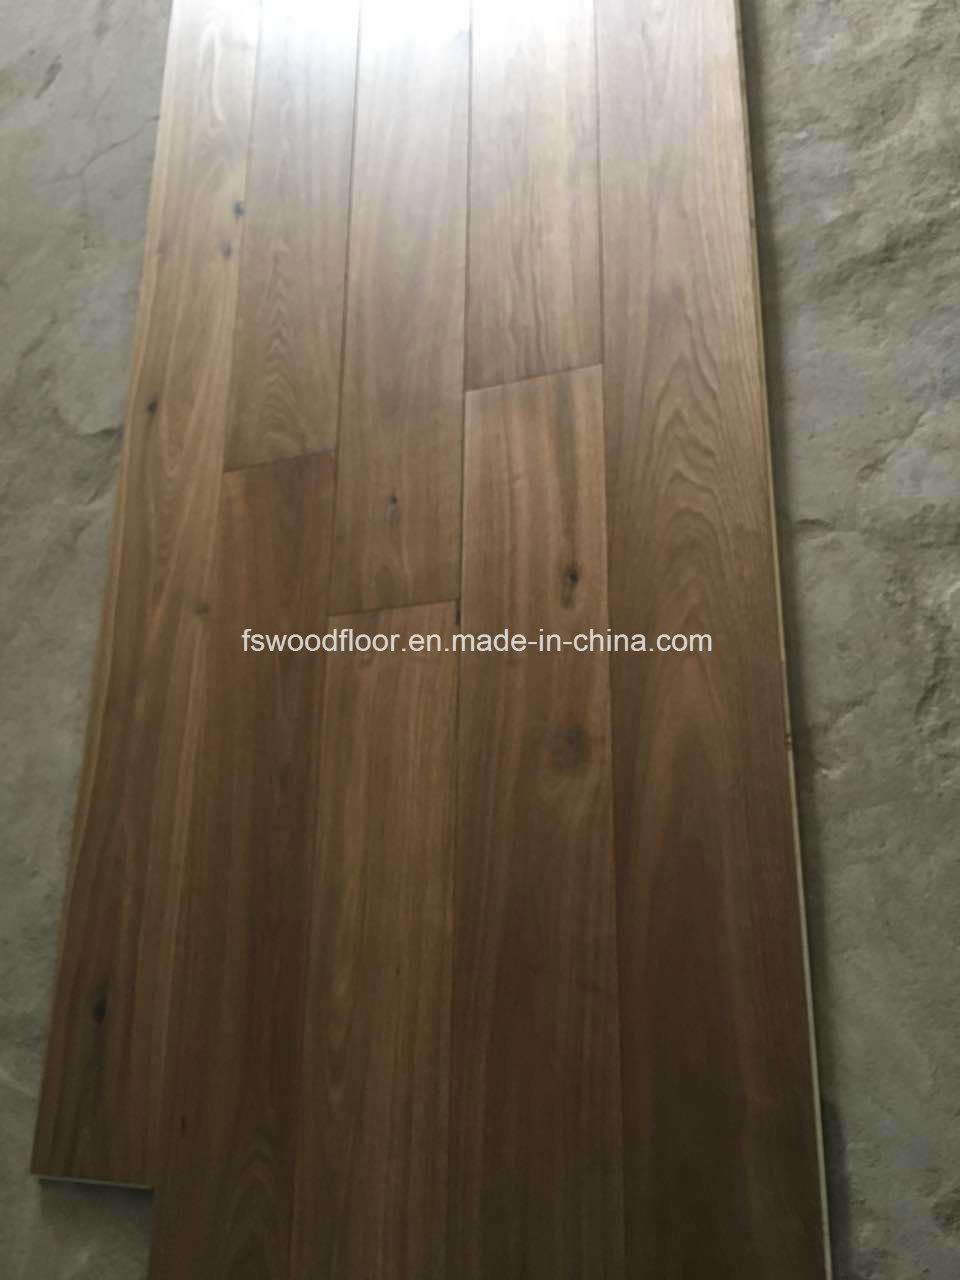 Smoked Oiled European Oak Engineered Wood Flooring